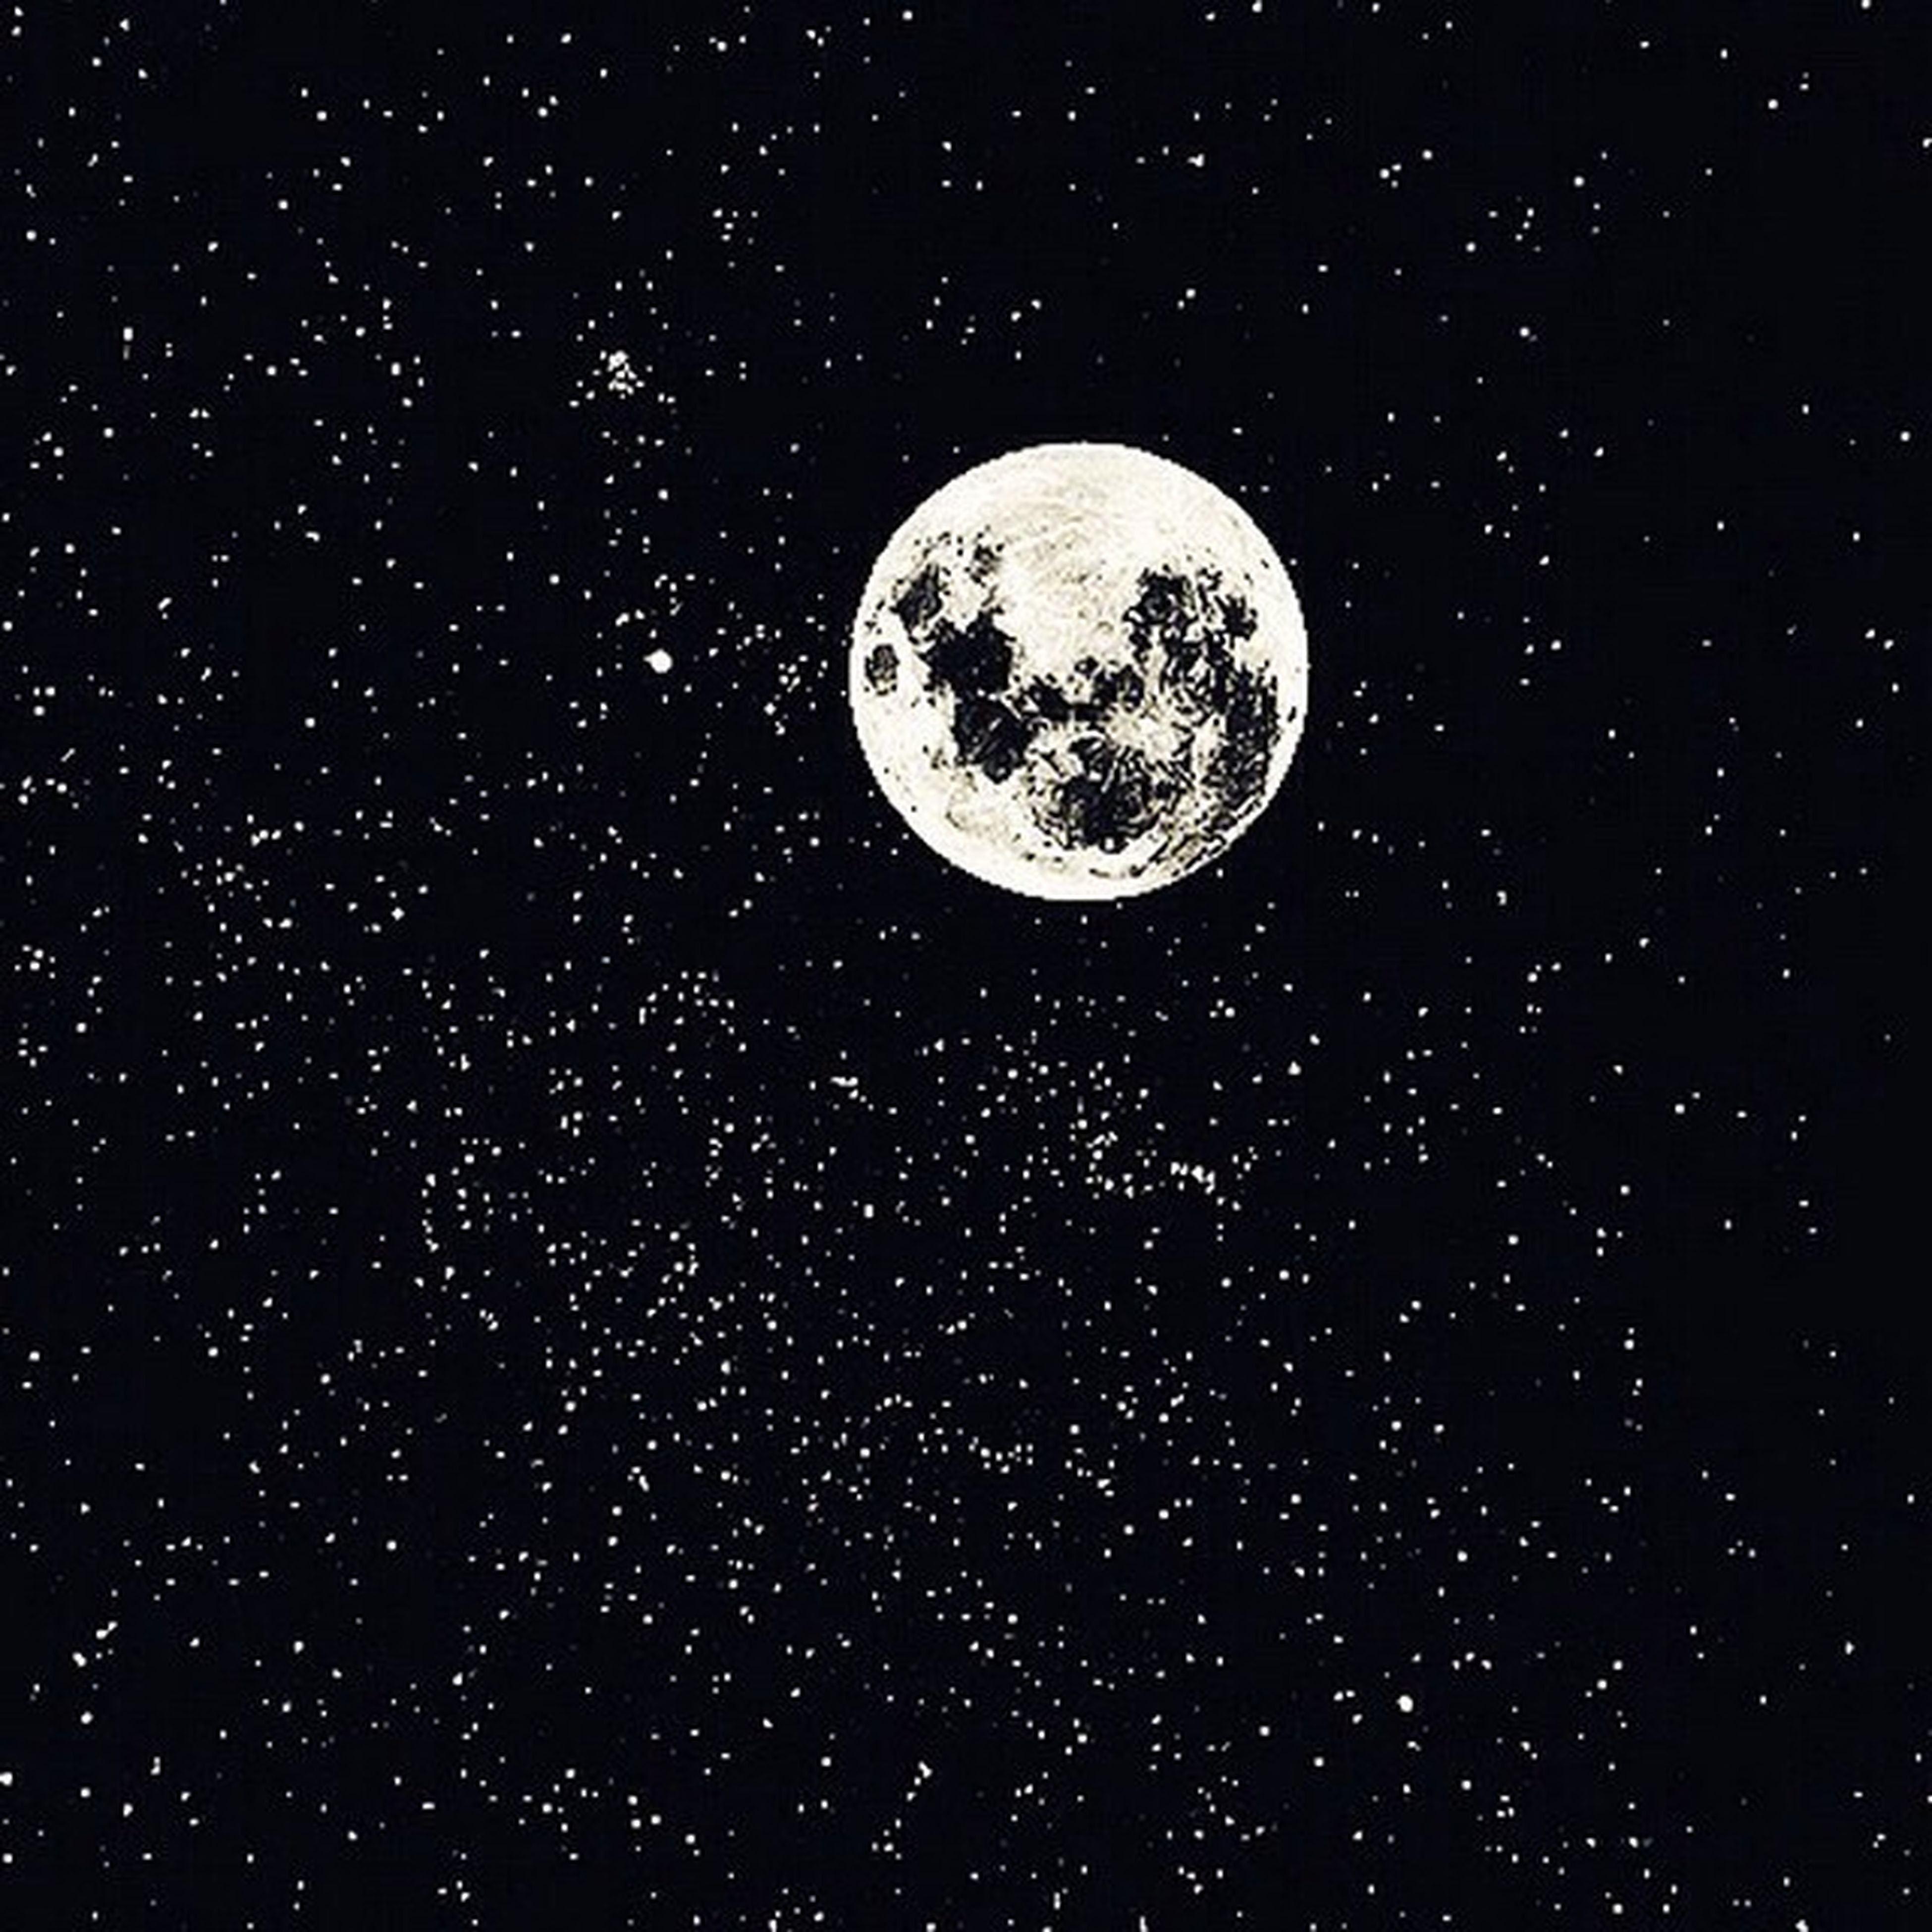 night, circle, astronomy, low angle view, dark, space, illuminated, drop, sky, transparent, glowing, exploration, no people, indoors, copy space, full frame, close-up, backgrounds, full moon, glass - material